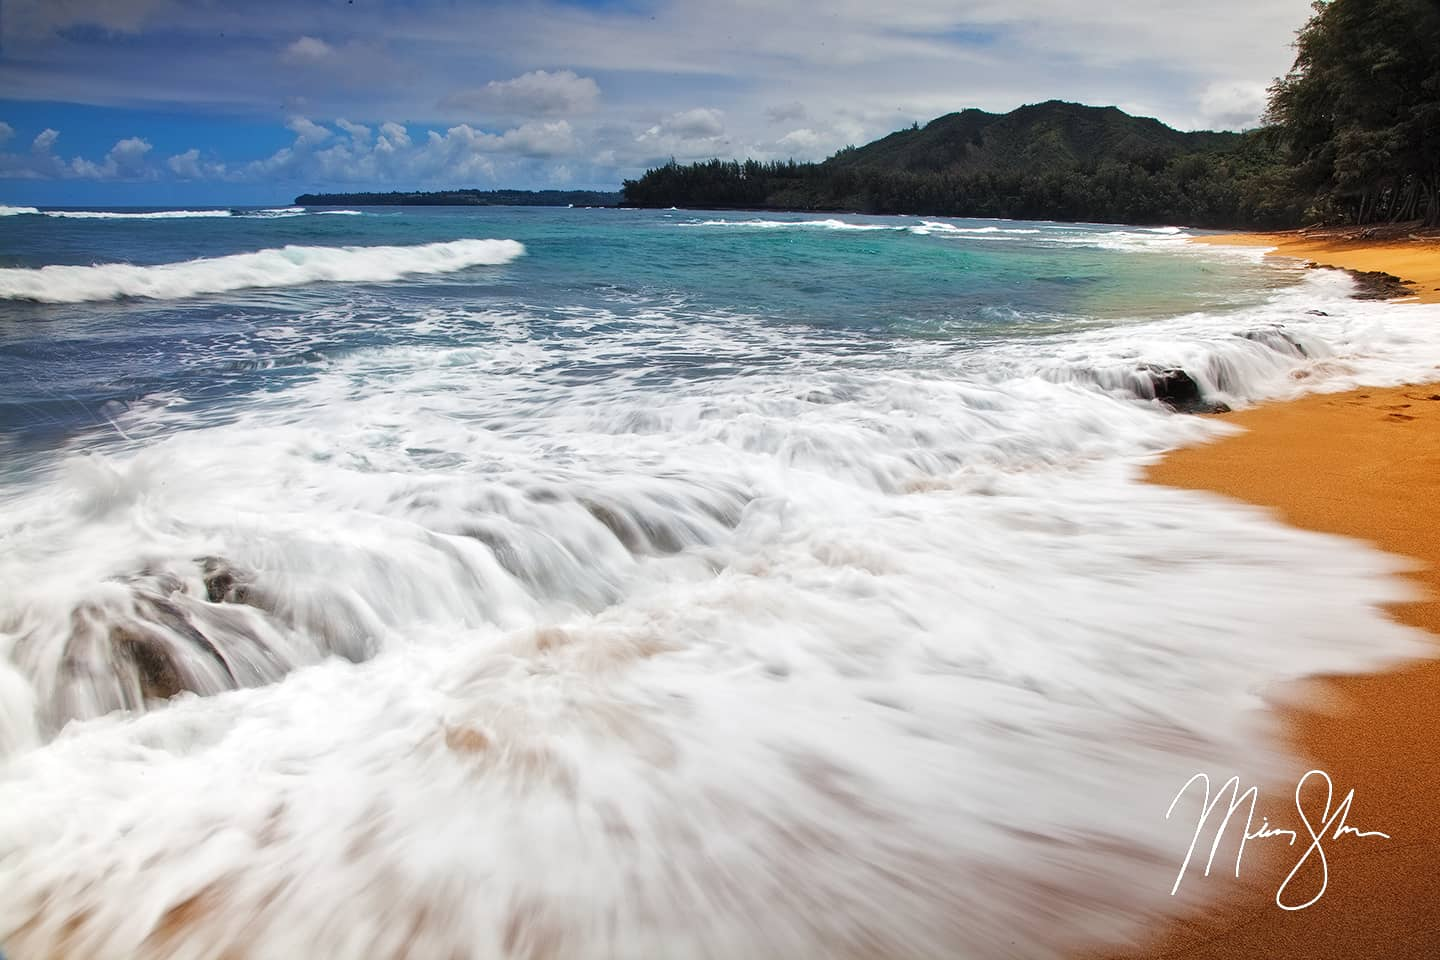 Waves of Wainiha Beach - Wainiha Beach, Haena State Park, Kauai, Hawaii